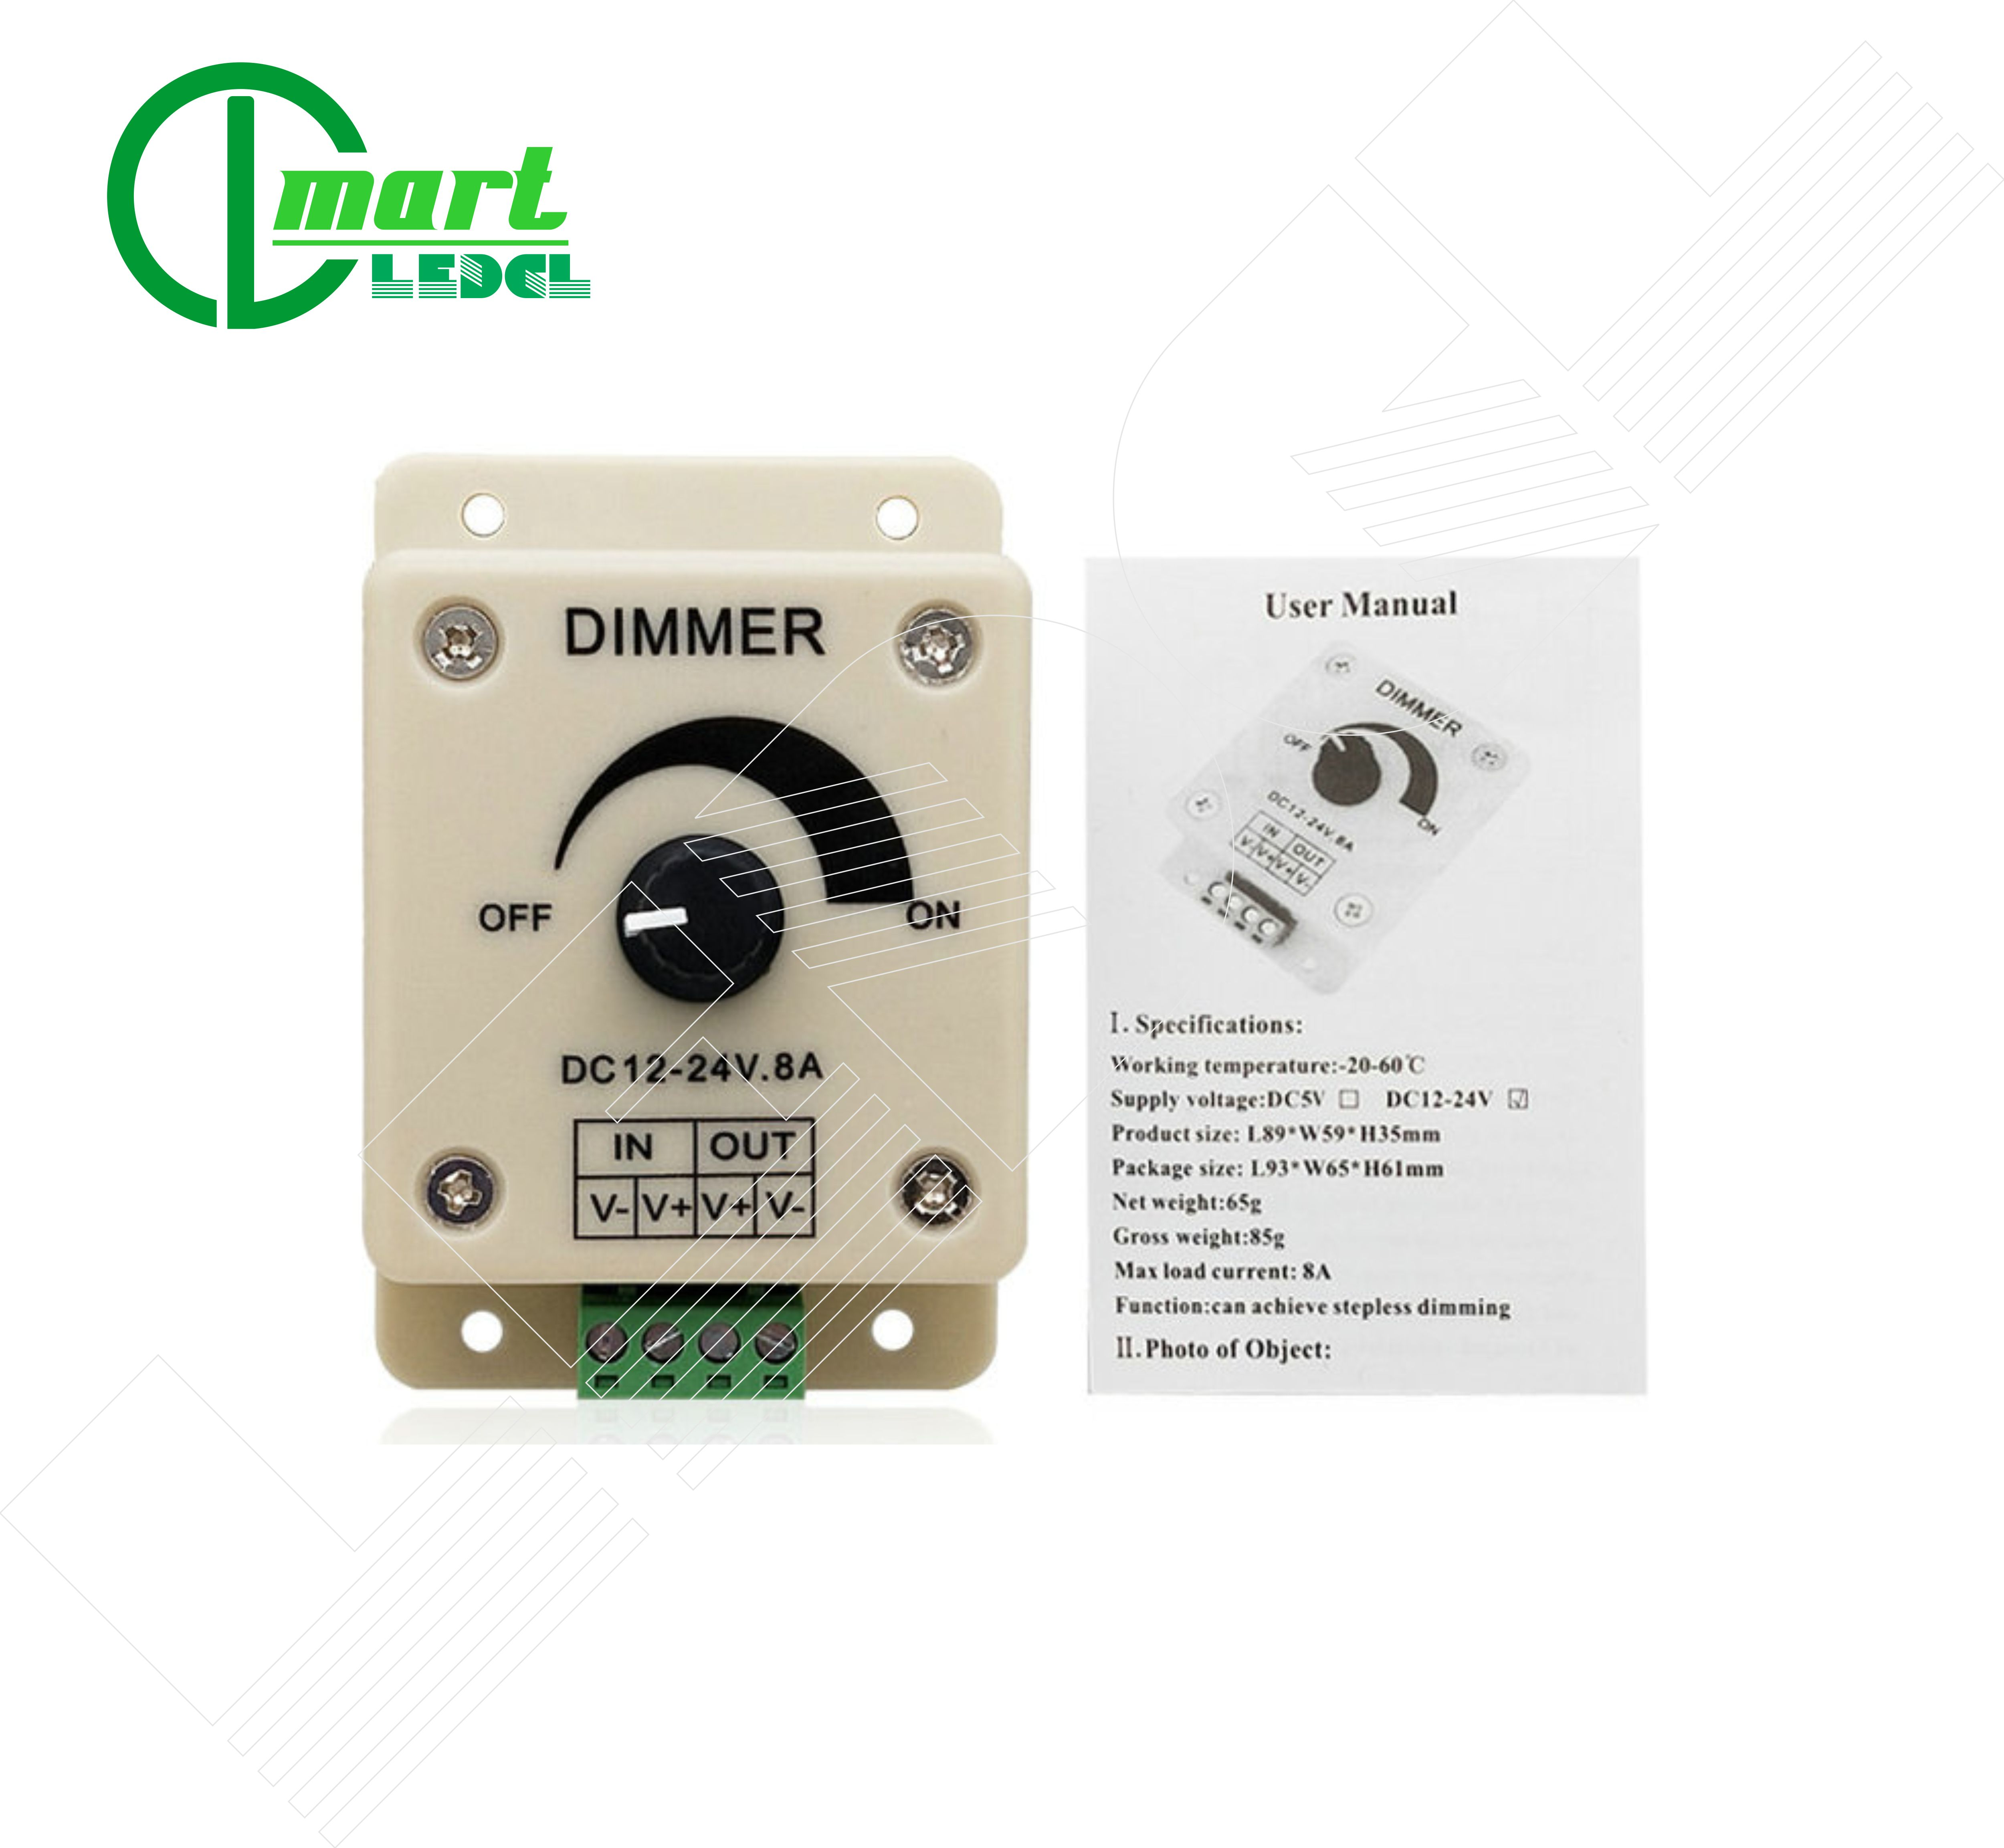 bo-dimmer-pwm-dieu-chinh-do-sang-den-dong-co-dc-12-24v-dong-max-8a